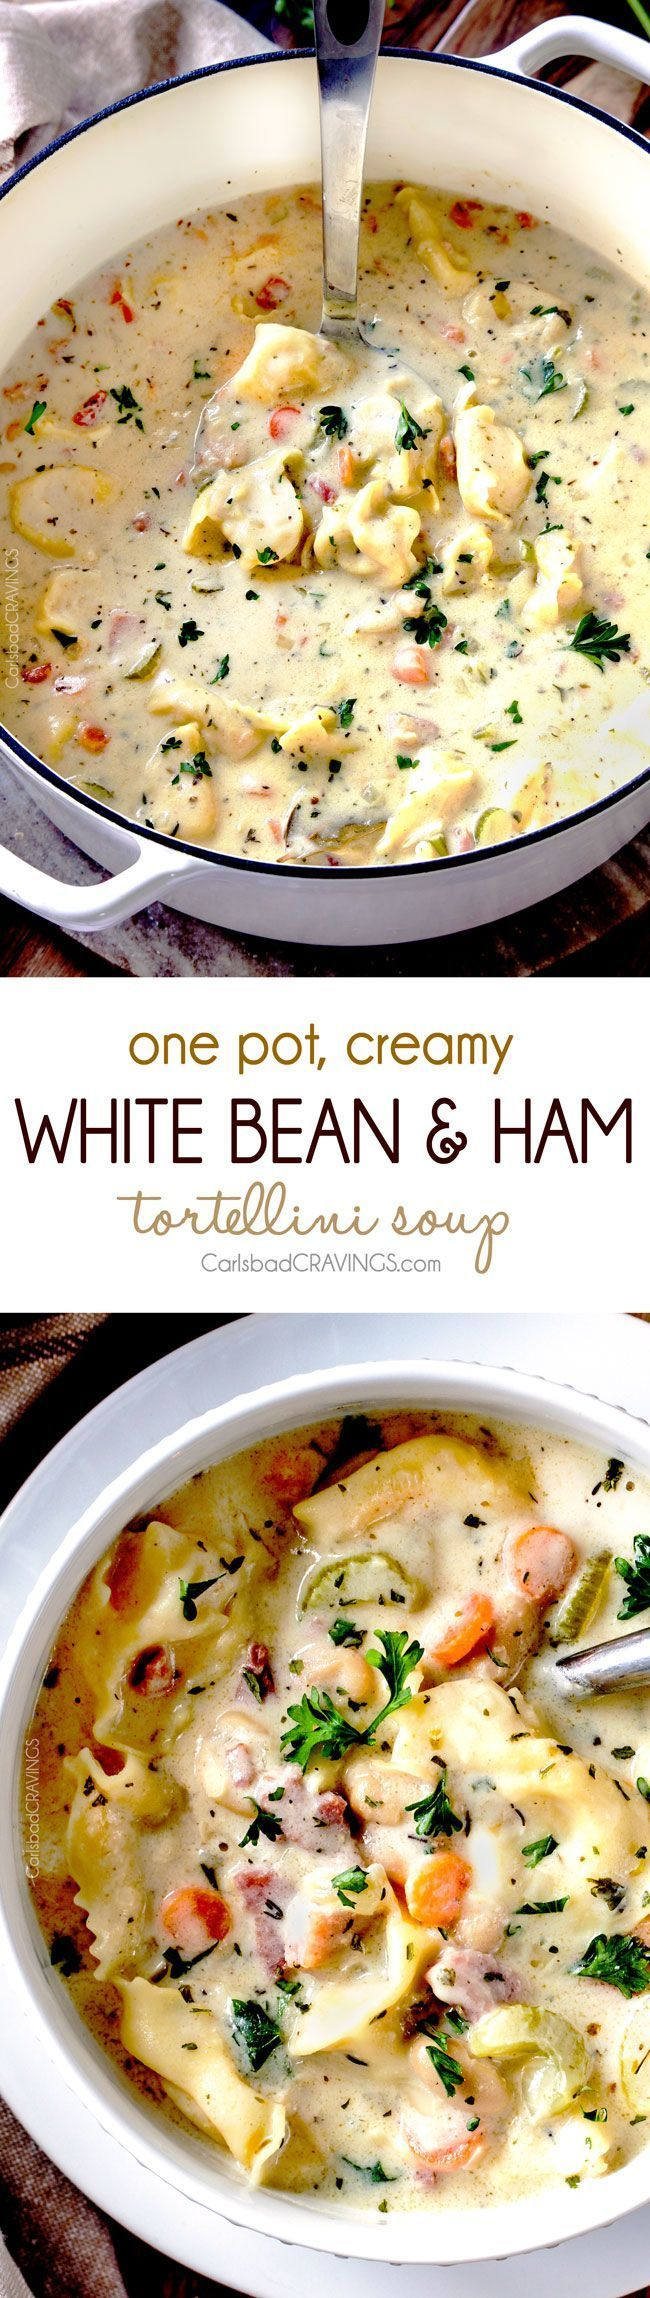 ONE POT hearty, cozy, Creamy White Bean and Ham Tortellini Soup simmered with…